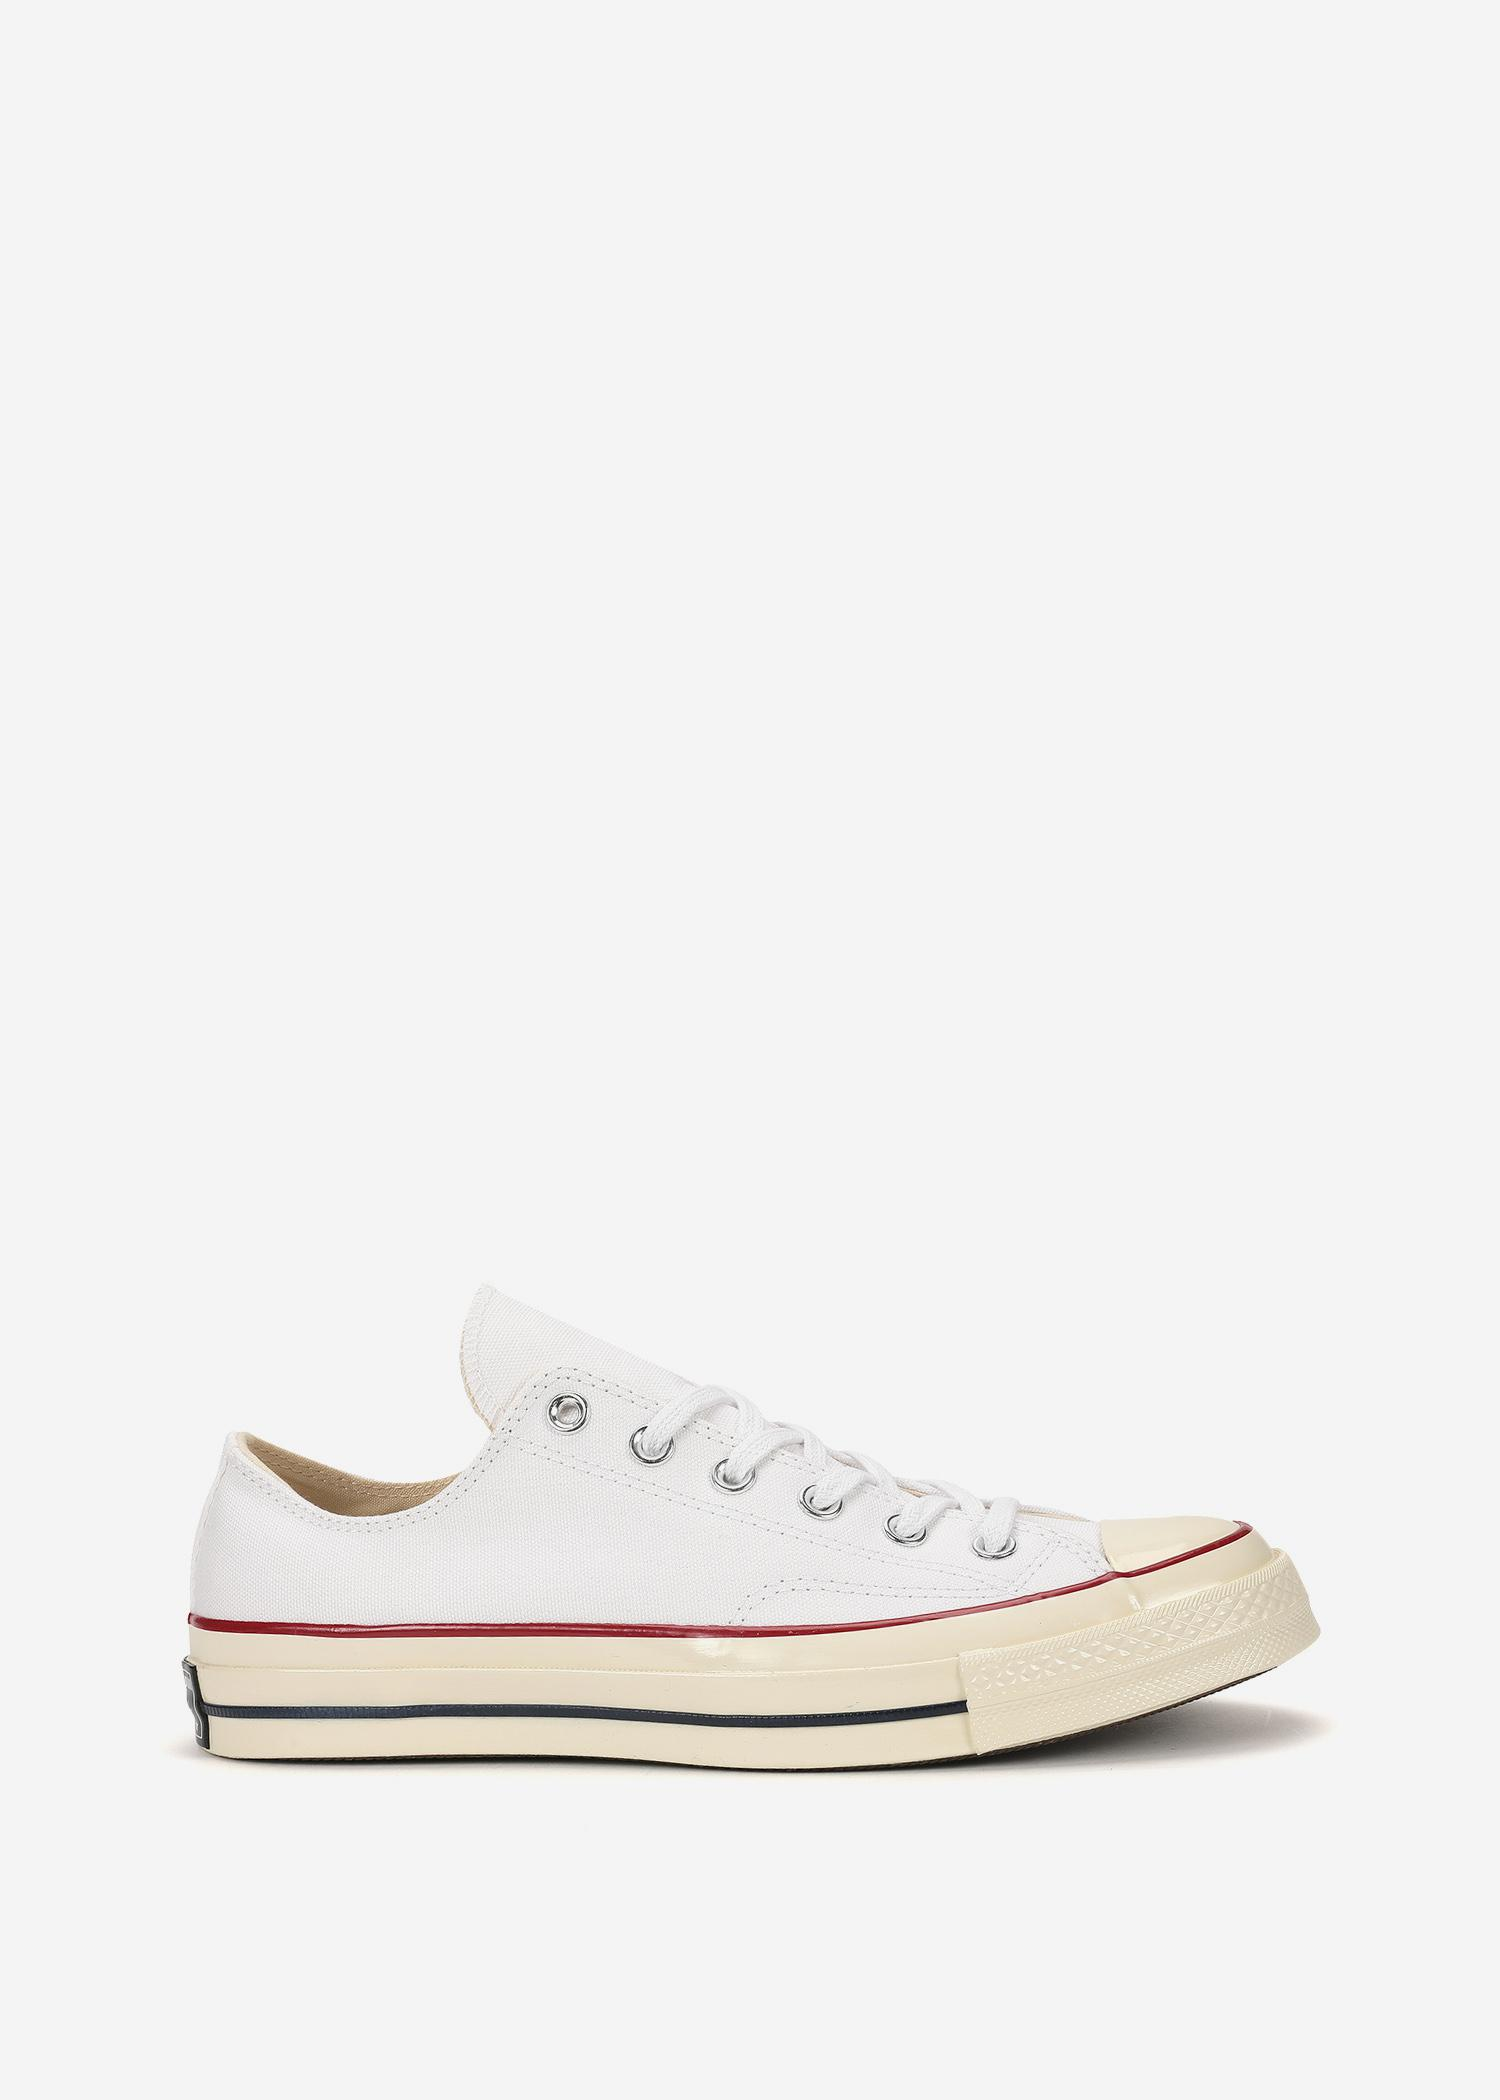 Lyst - Converse Chuck Taylor All Star  70 Ox in White - Save 10.0% 1cbad8b41